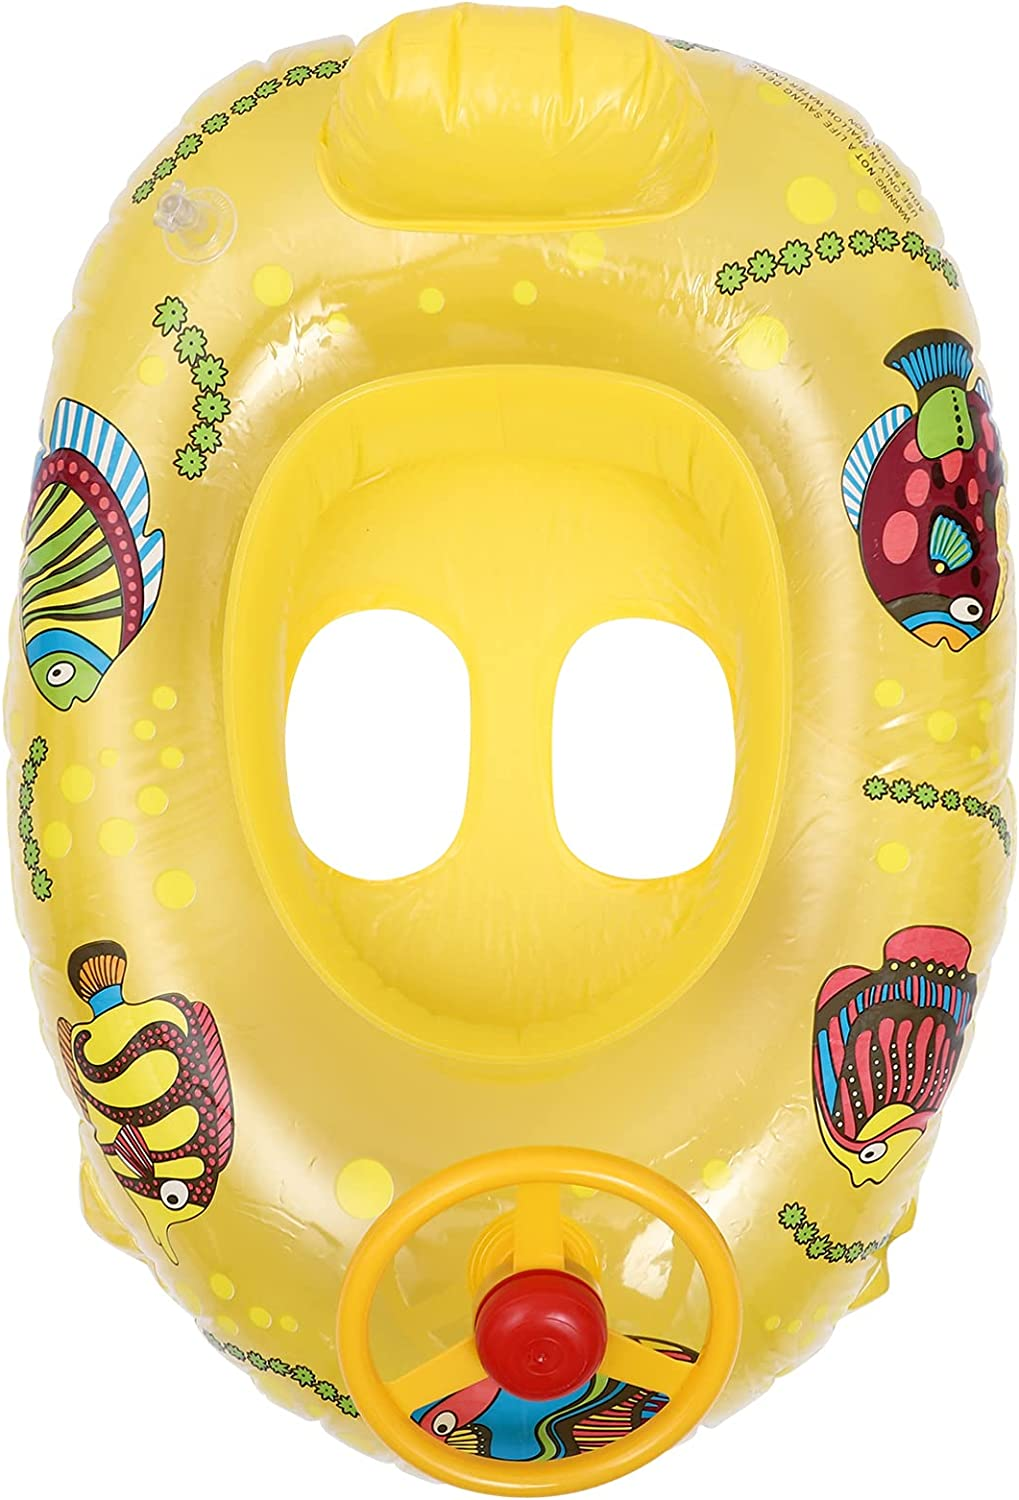 NUOBESTY Super sale period limited Yellow Large discharge sale Baby Swimming Inflatable Shaped Ring Yacht